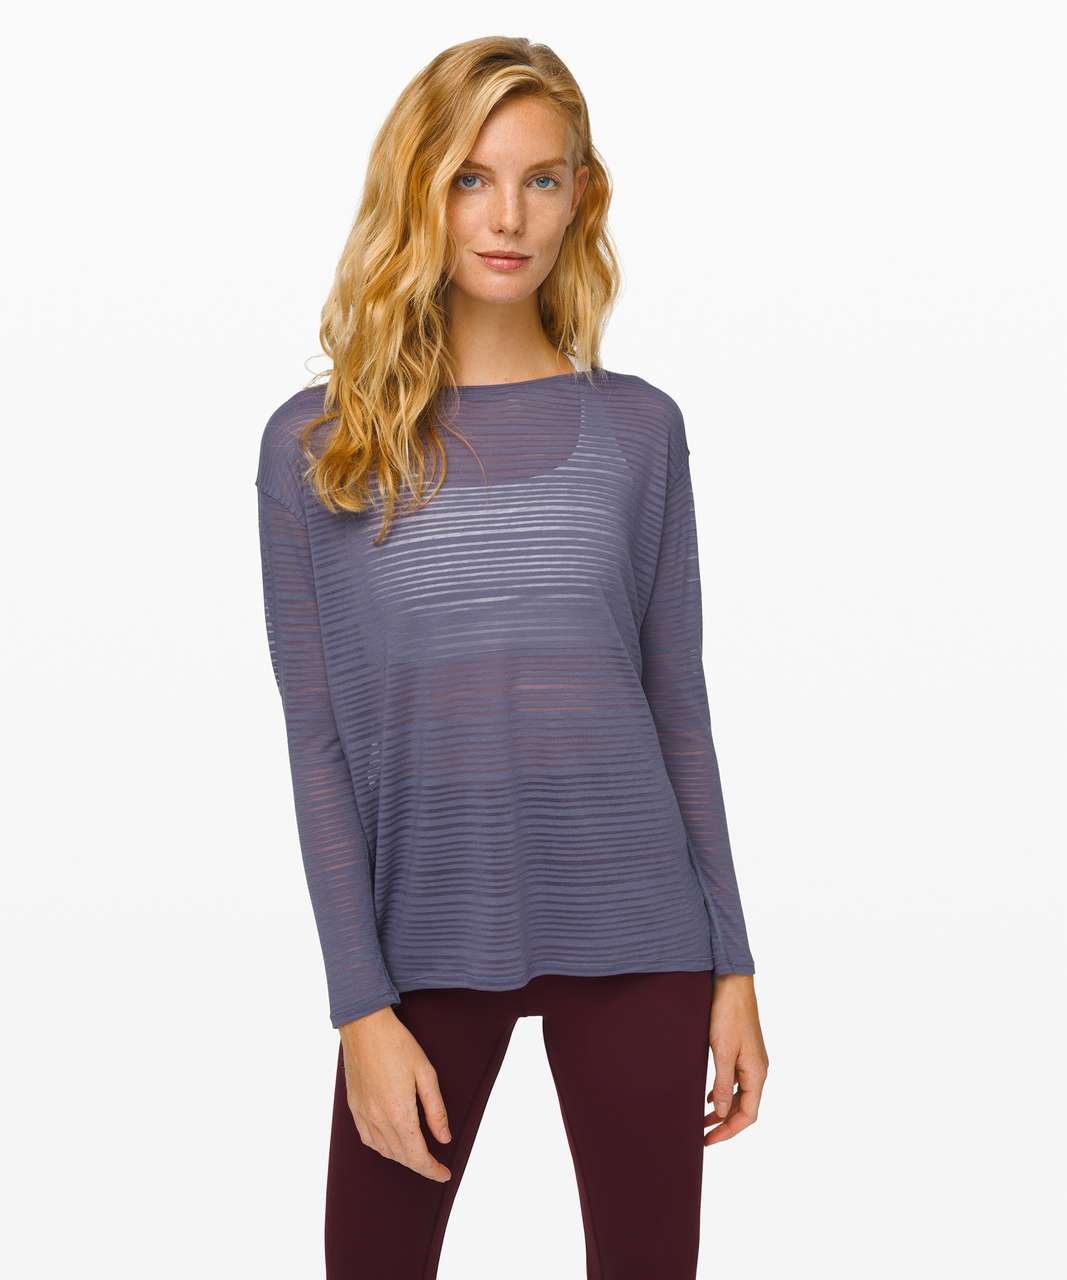 Lululemon Back in Action Long Sleeve *Sheer - Luminous Stripe Burnout Purple Quartz